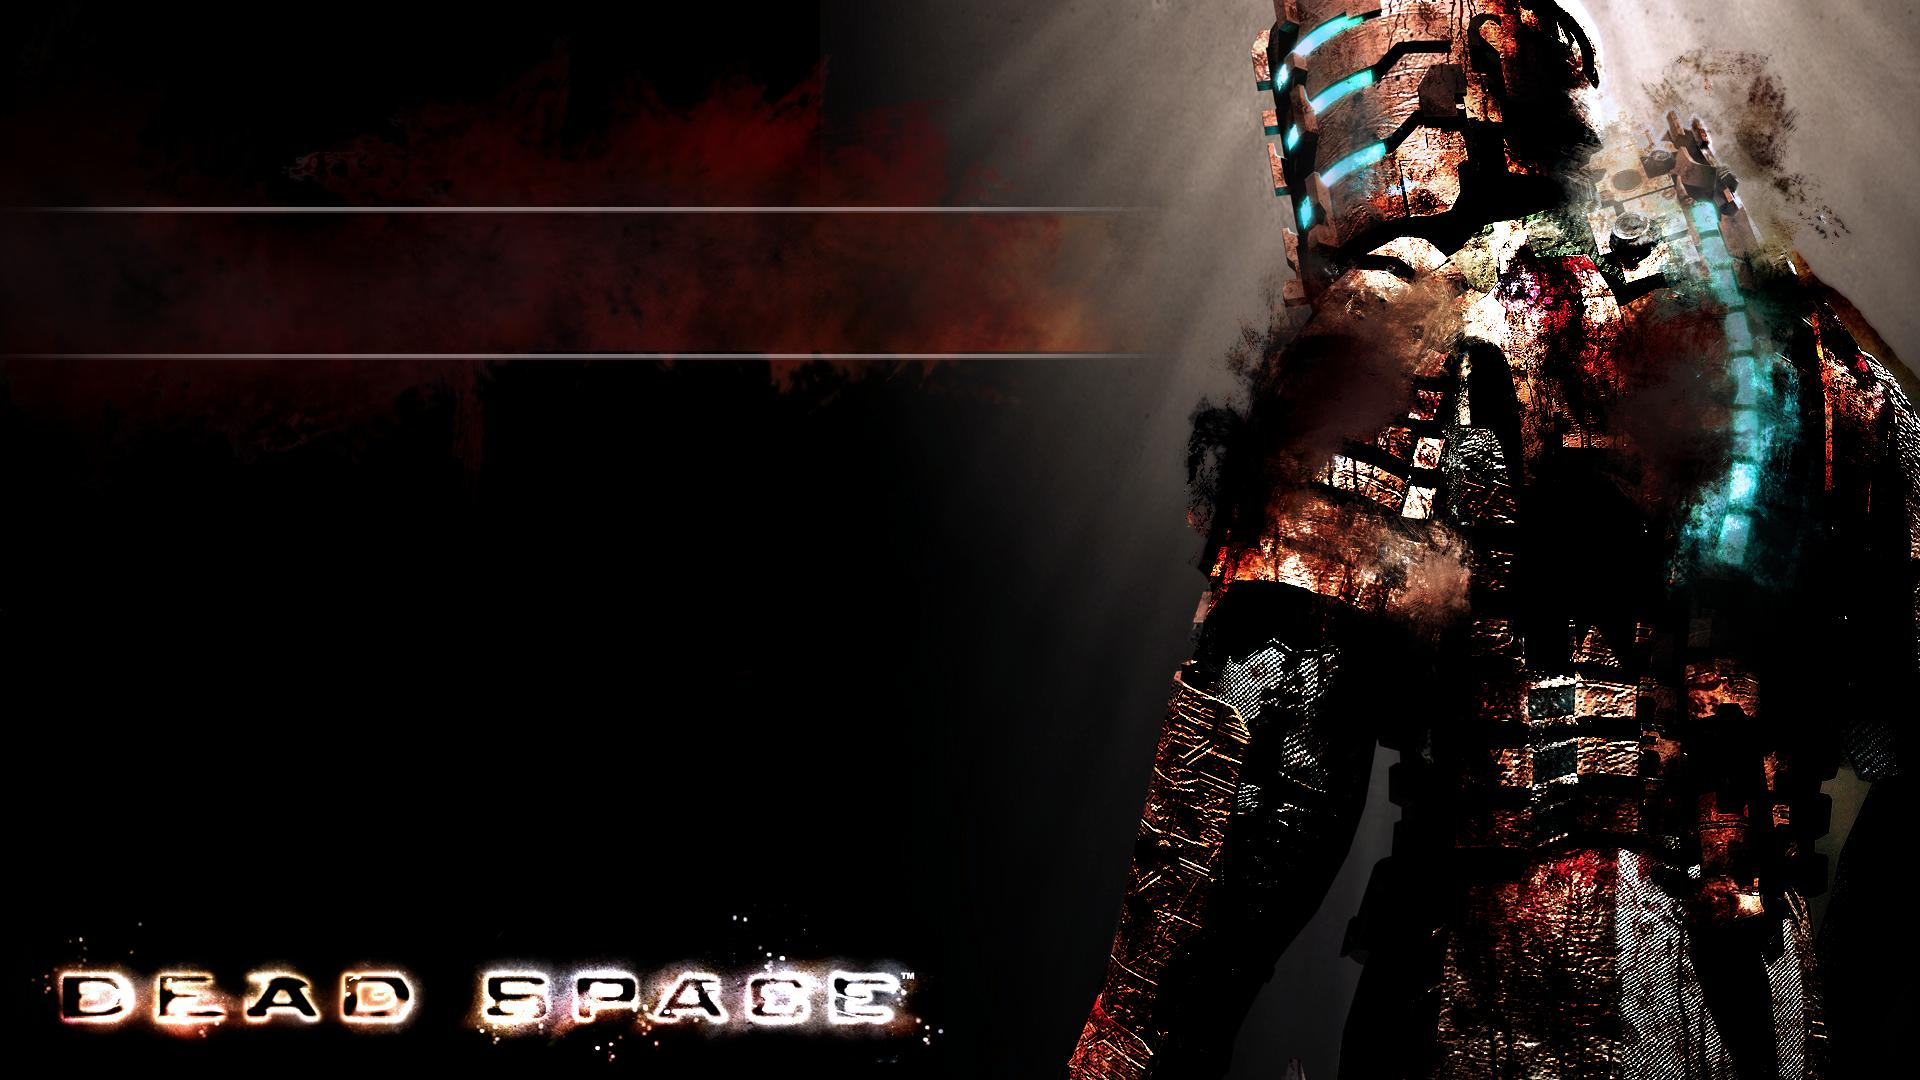 Dead-Space-HD-Backgrounds-wallpaper-wpc5803978